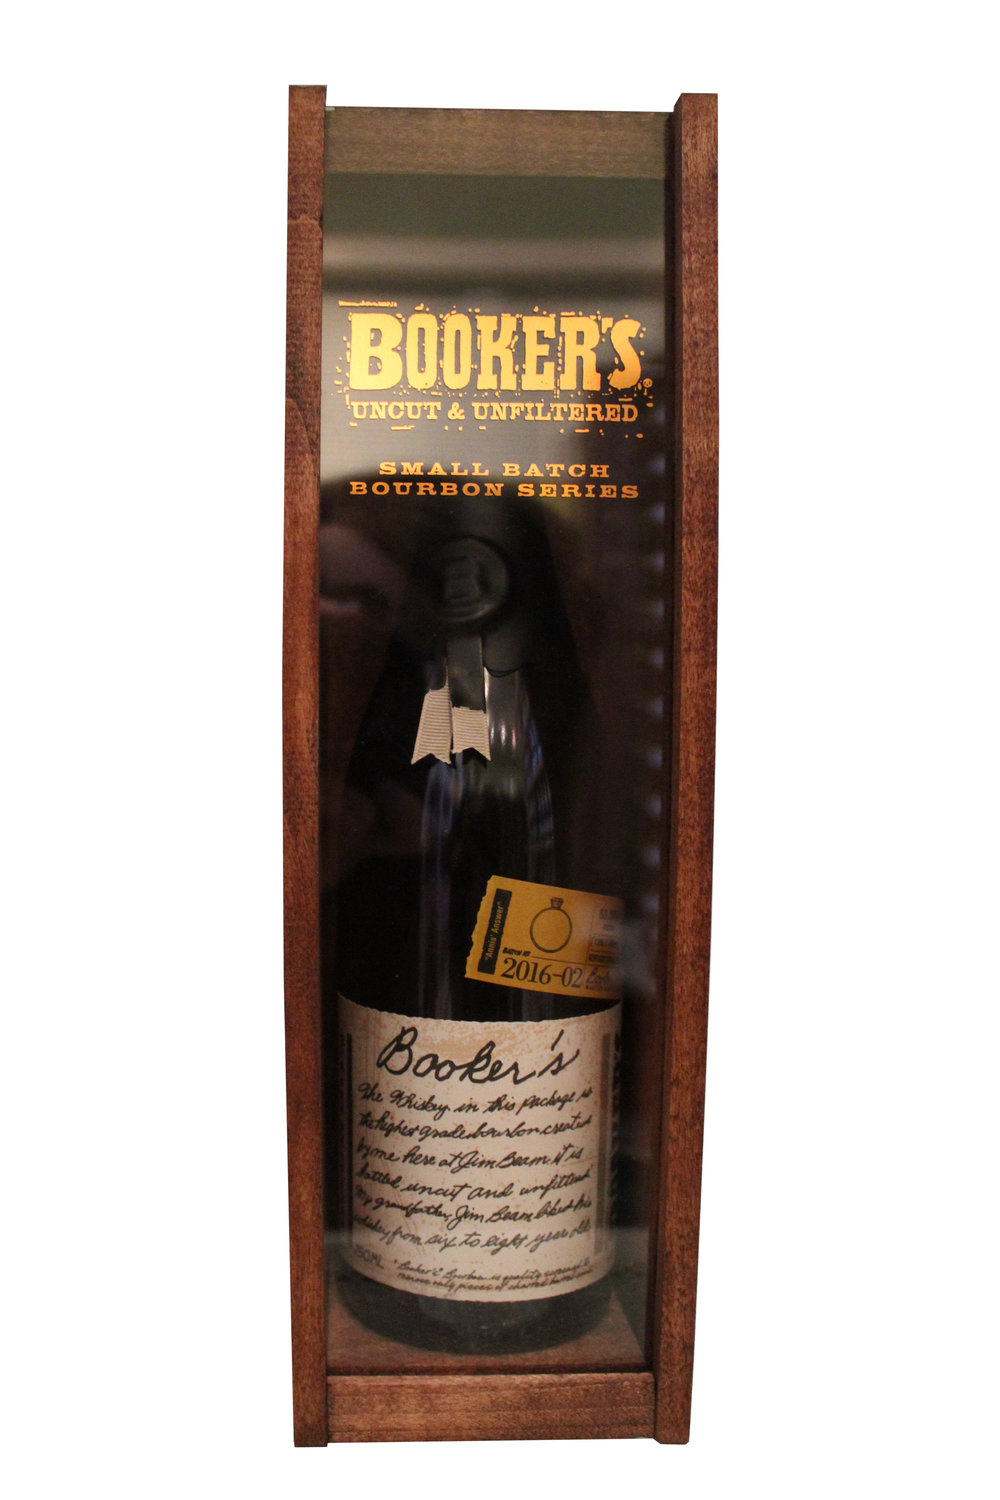 Small-Batch Bourbon Booker's, Kentucky